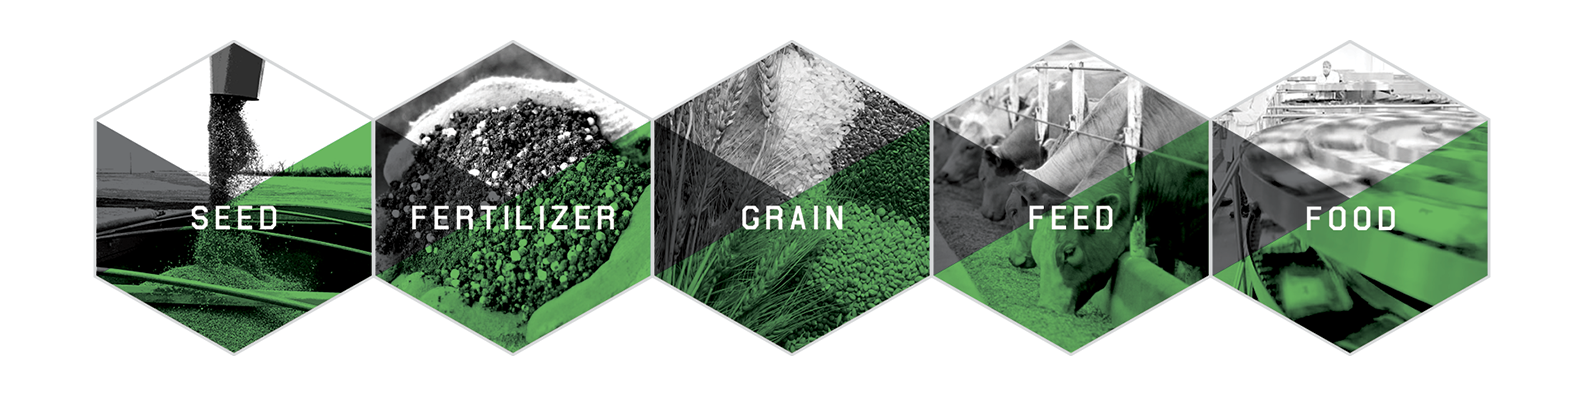 AGI operates across five platforms: Seed, Fertilizer, Grain, Feed, and Food